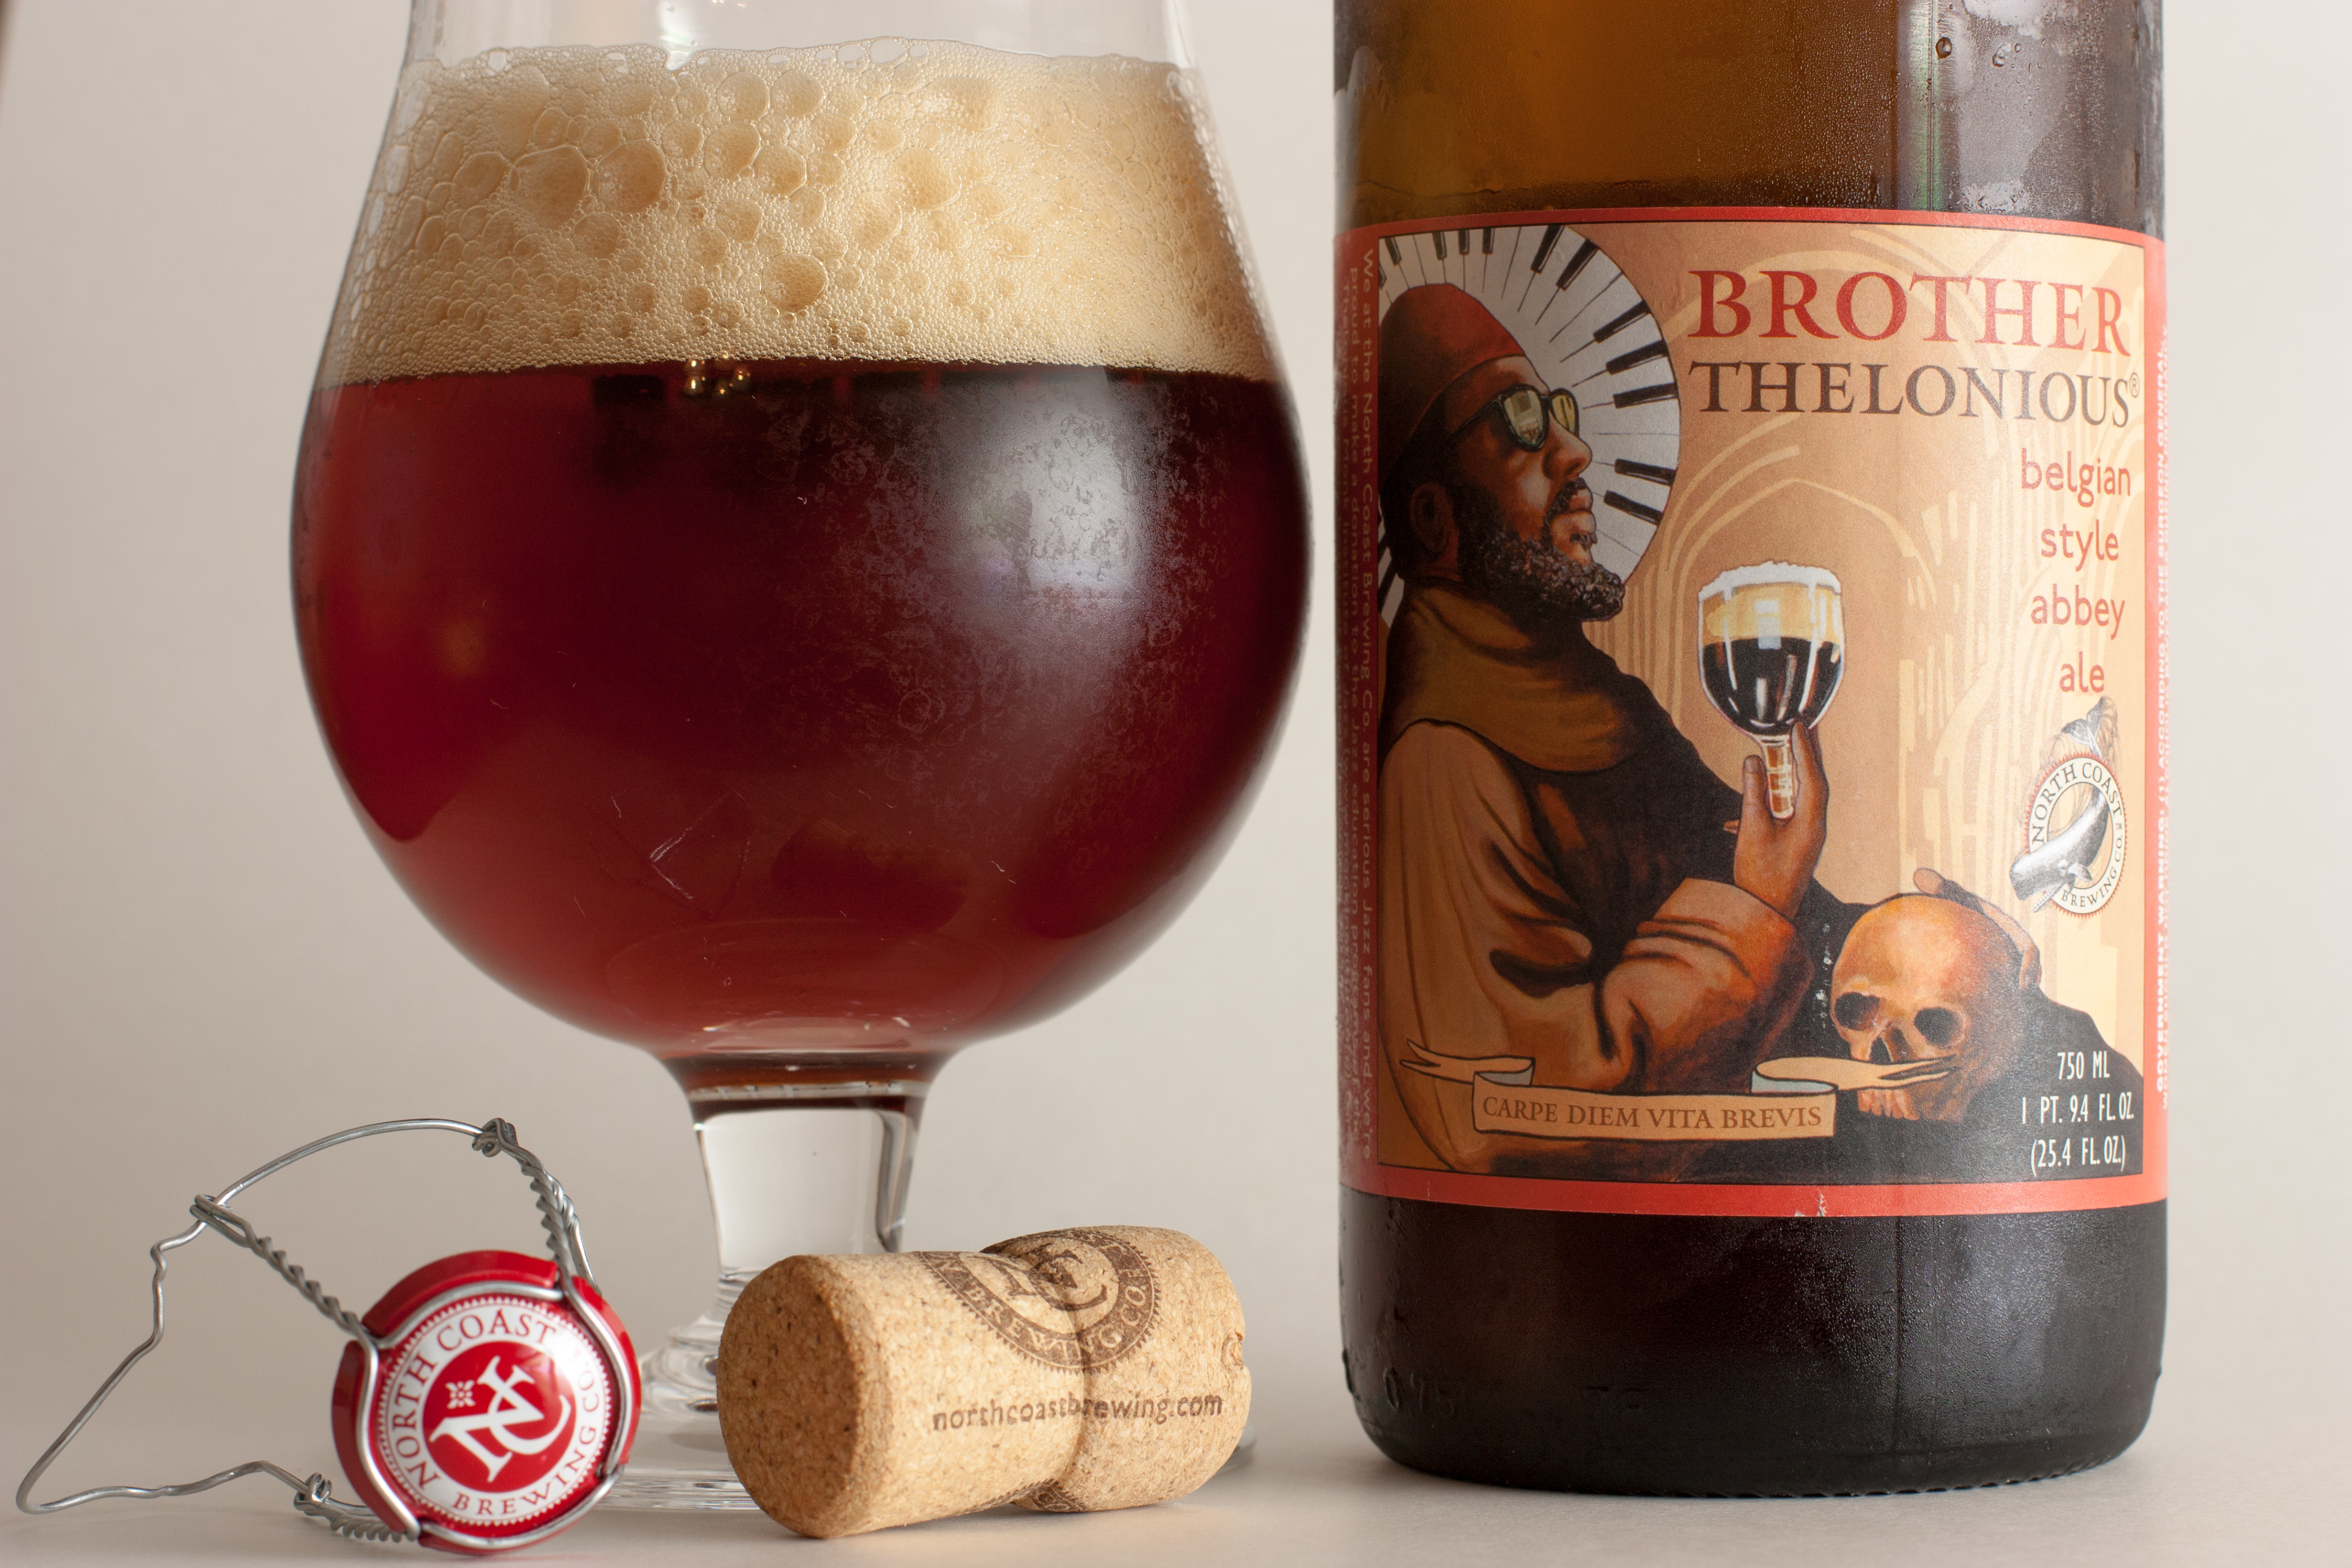 North Coast Brewing Co. Brother Thelonious - Beers and Ears